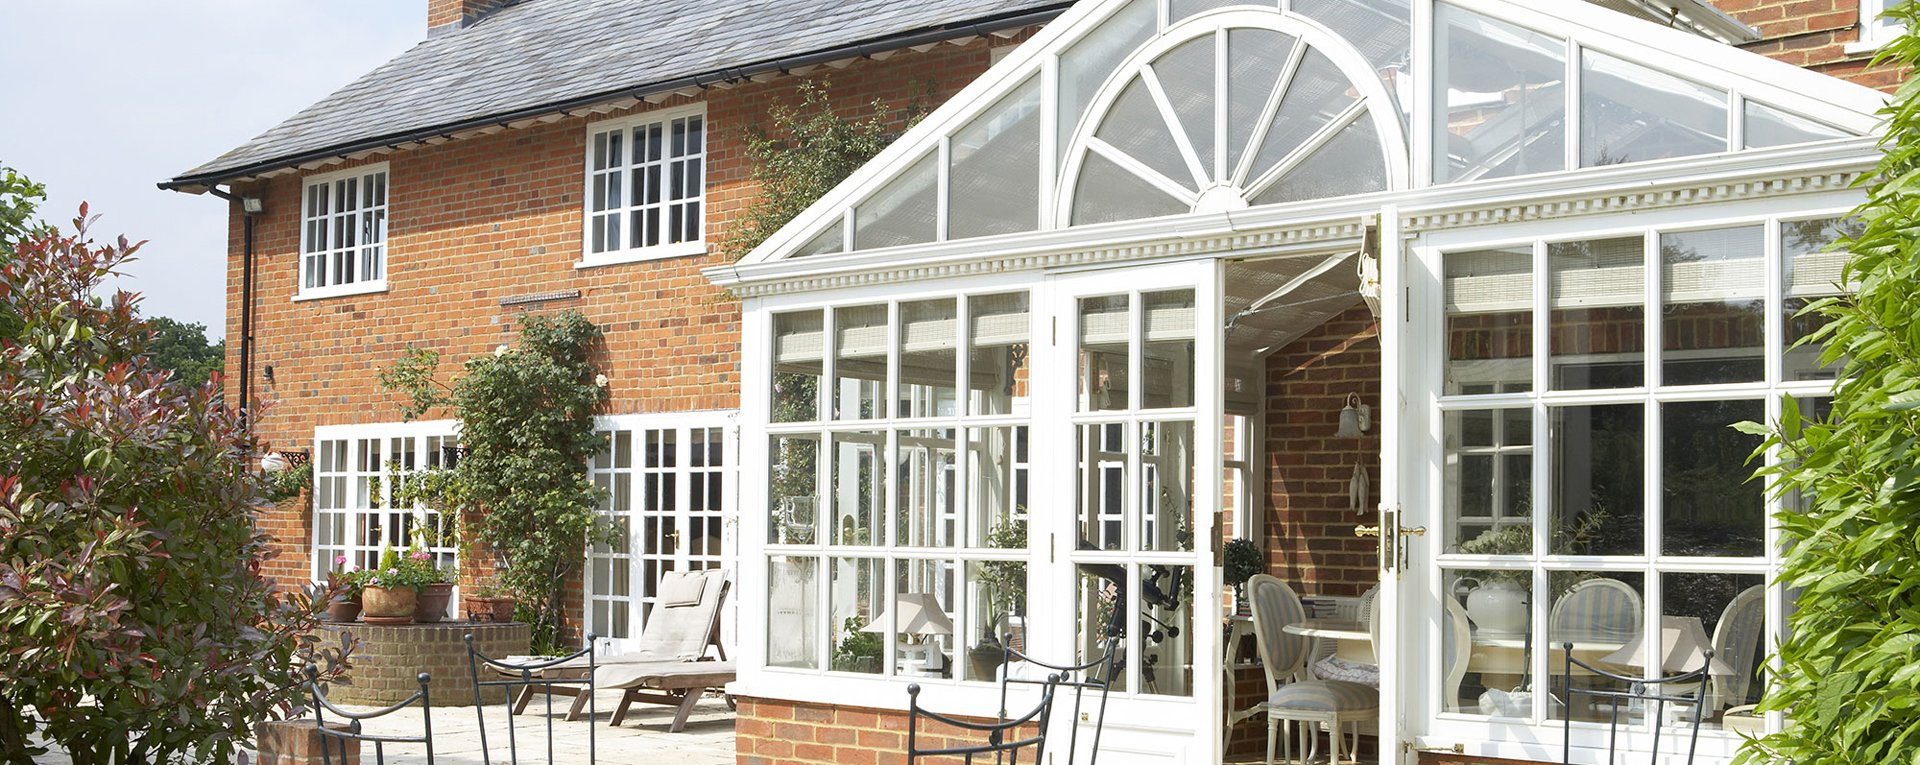 upvc conservatory at the back of a house